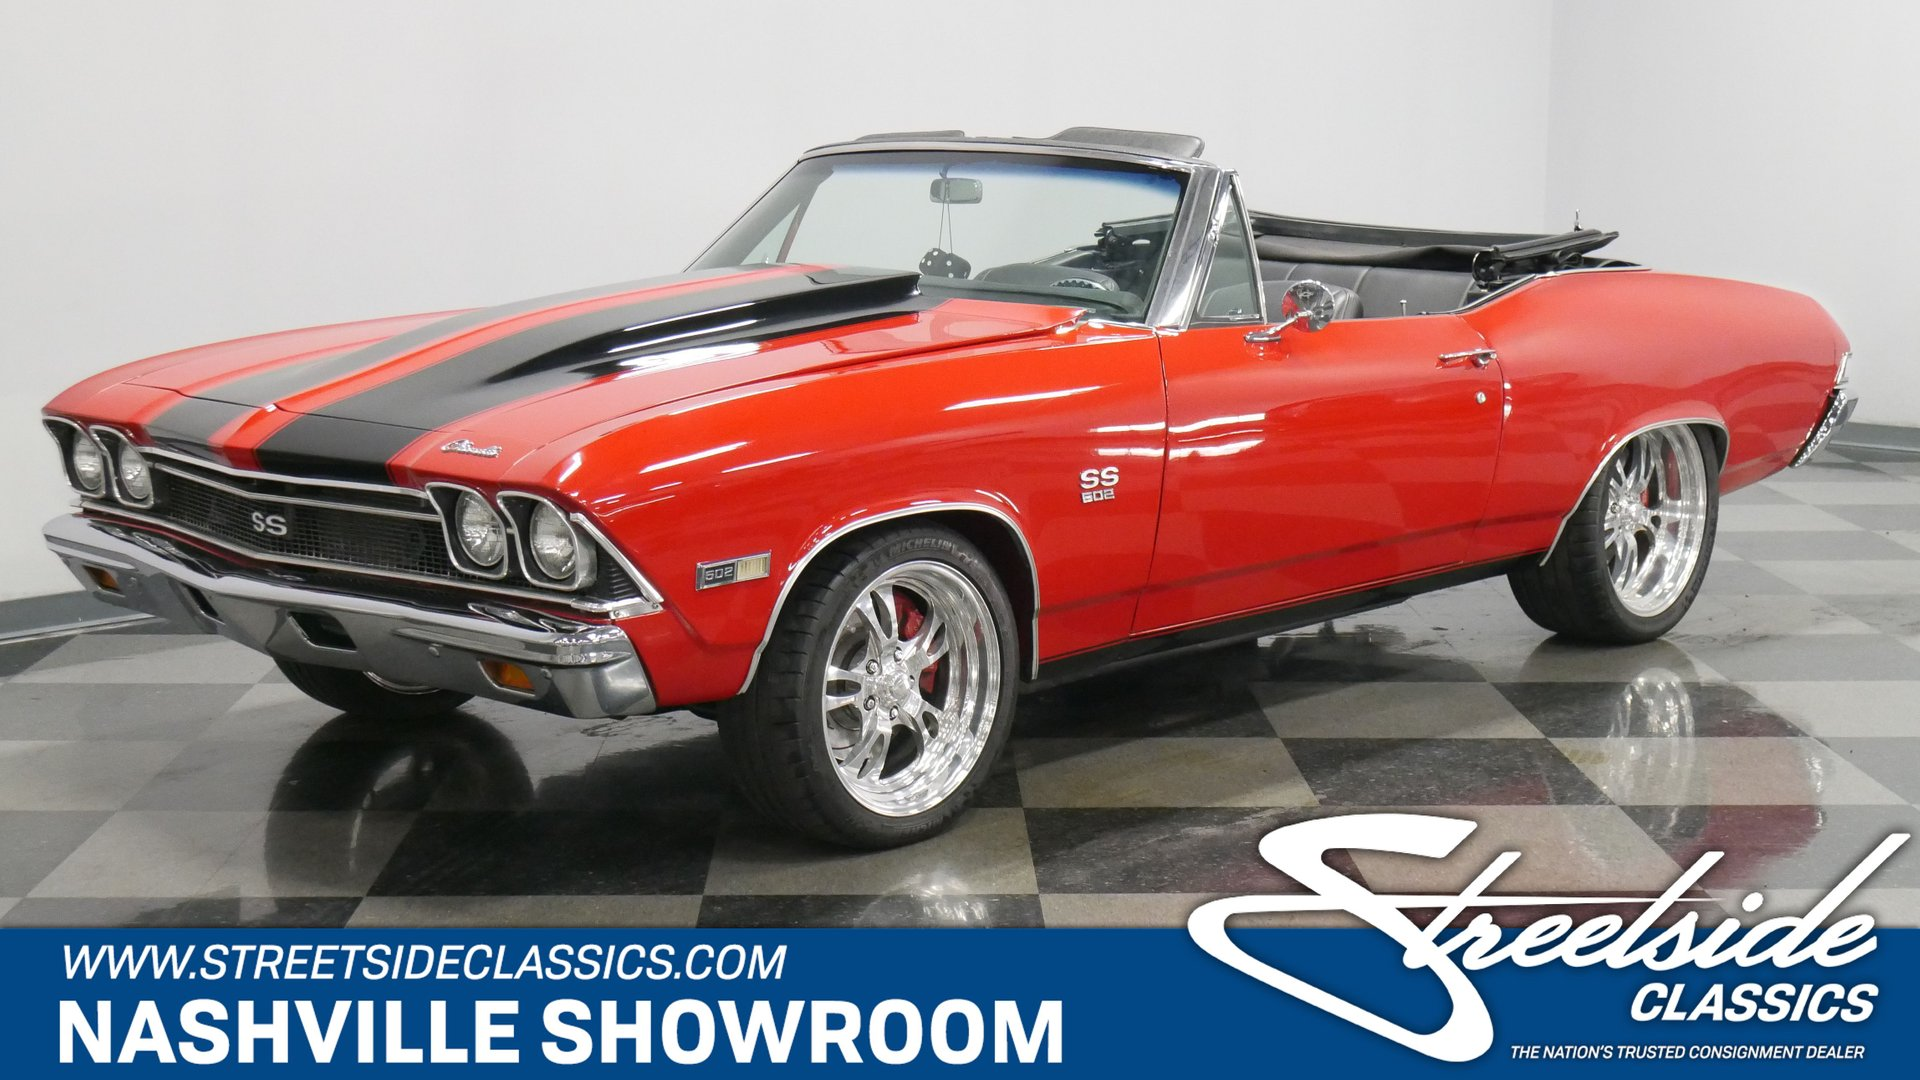 1968 Chevrolet Chevelle SS 502 Pro Touring for sale #174166